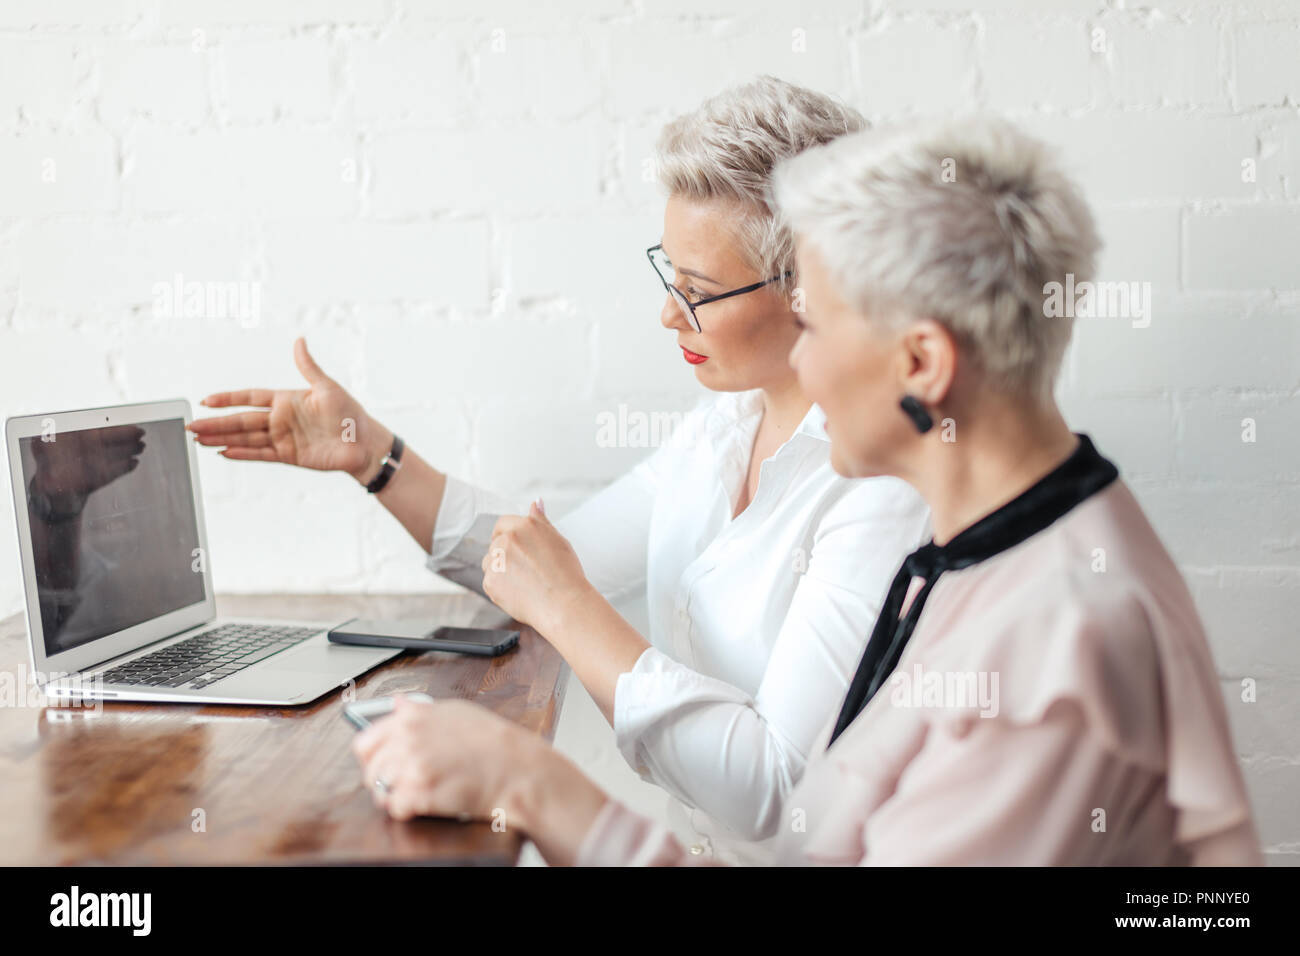 worker show presentation for her female boss or client - Stock Image